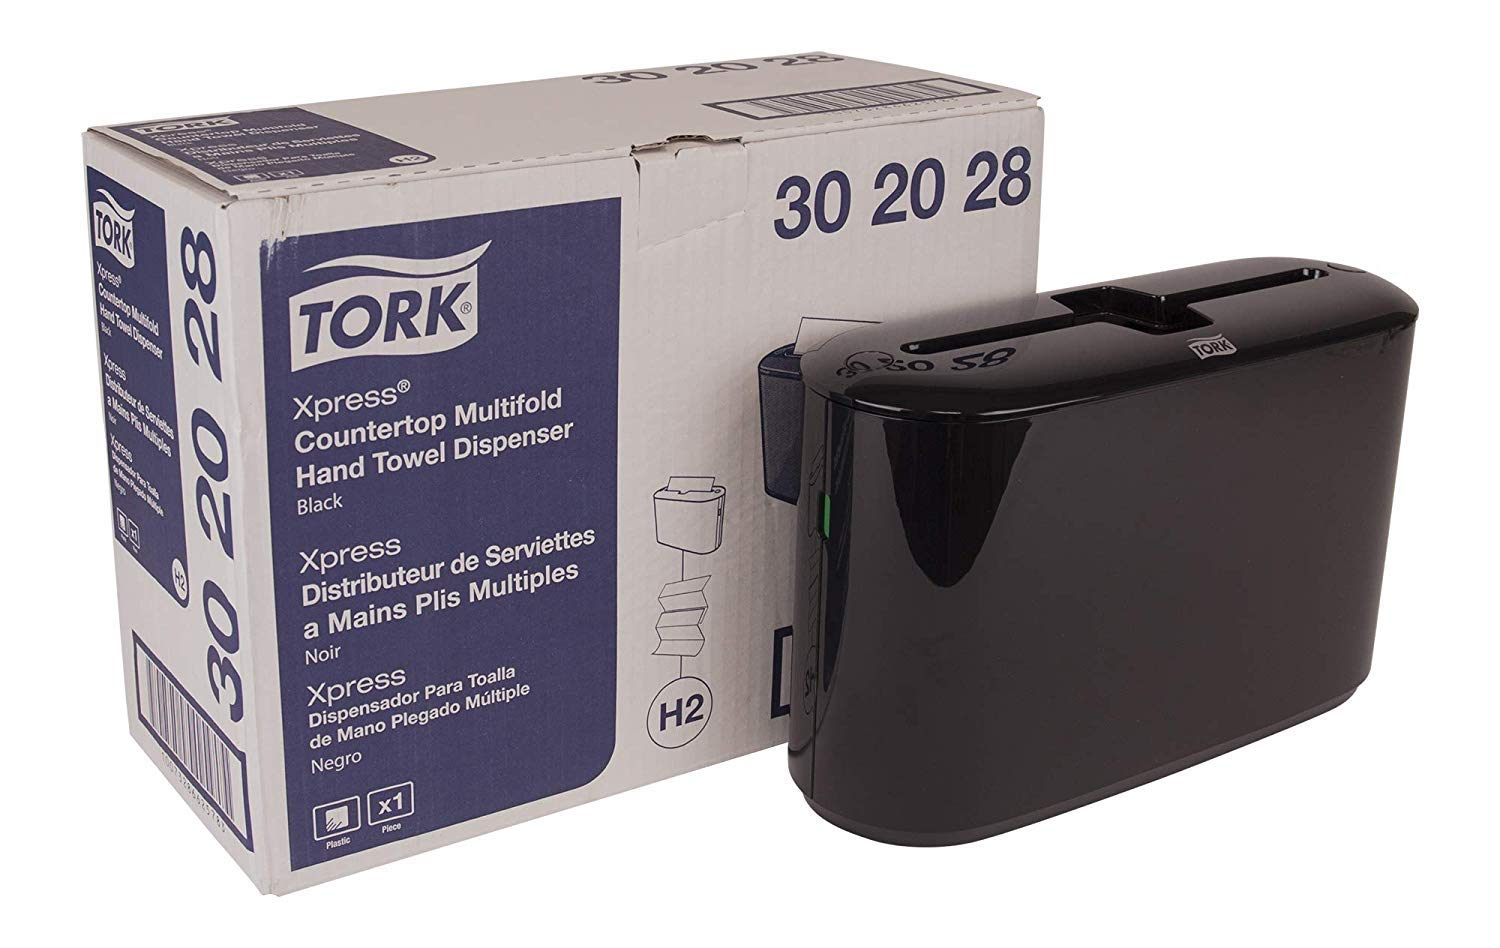 Tork Xpress 302028 Countertop Multifold Hand Towel Dispenser, Plastic, 7.92'' Height x 12.68'' Width x 4.56'' Depth, Black (Case of 1) for use MB550A, MB640, MB540A (Case of 2) by Tork (Image #1)